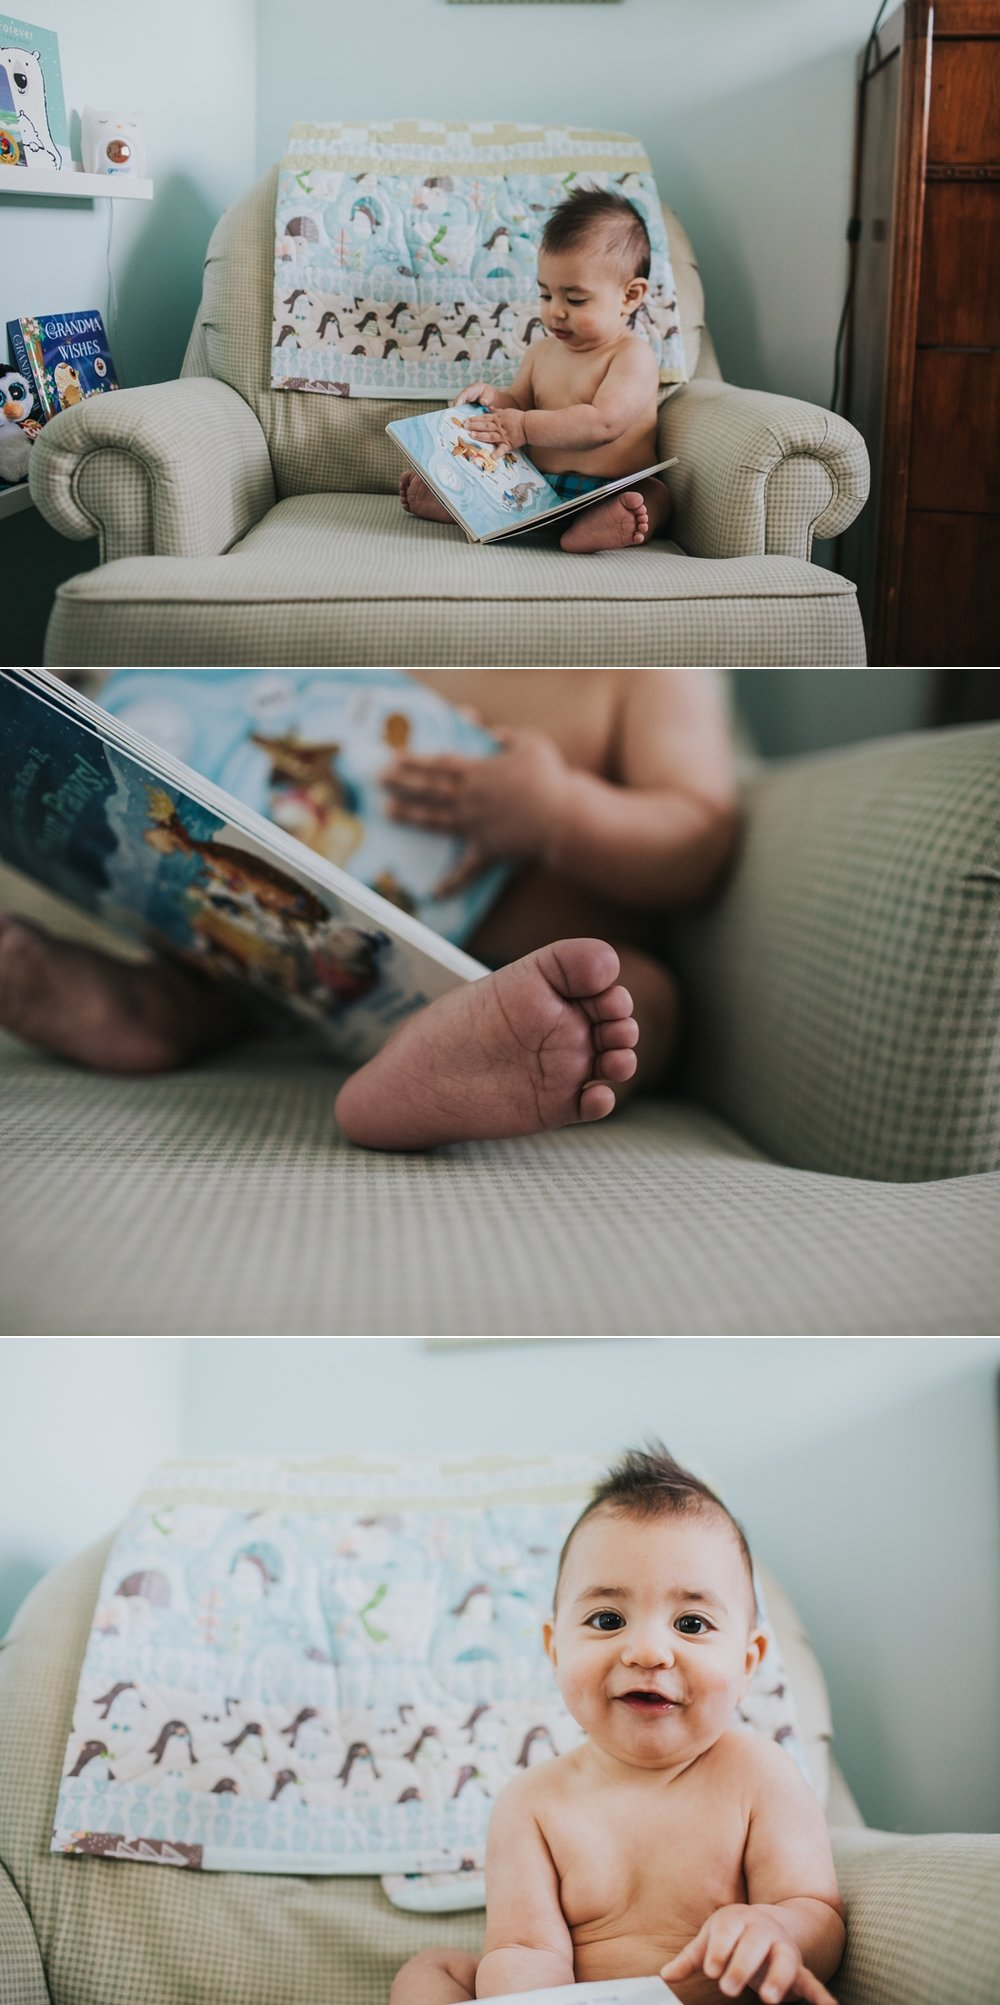 baby reading a book on a chair lifestyle photography